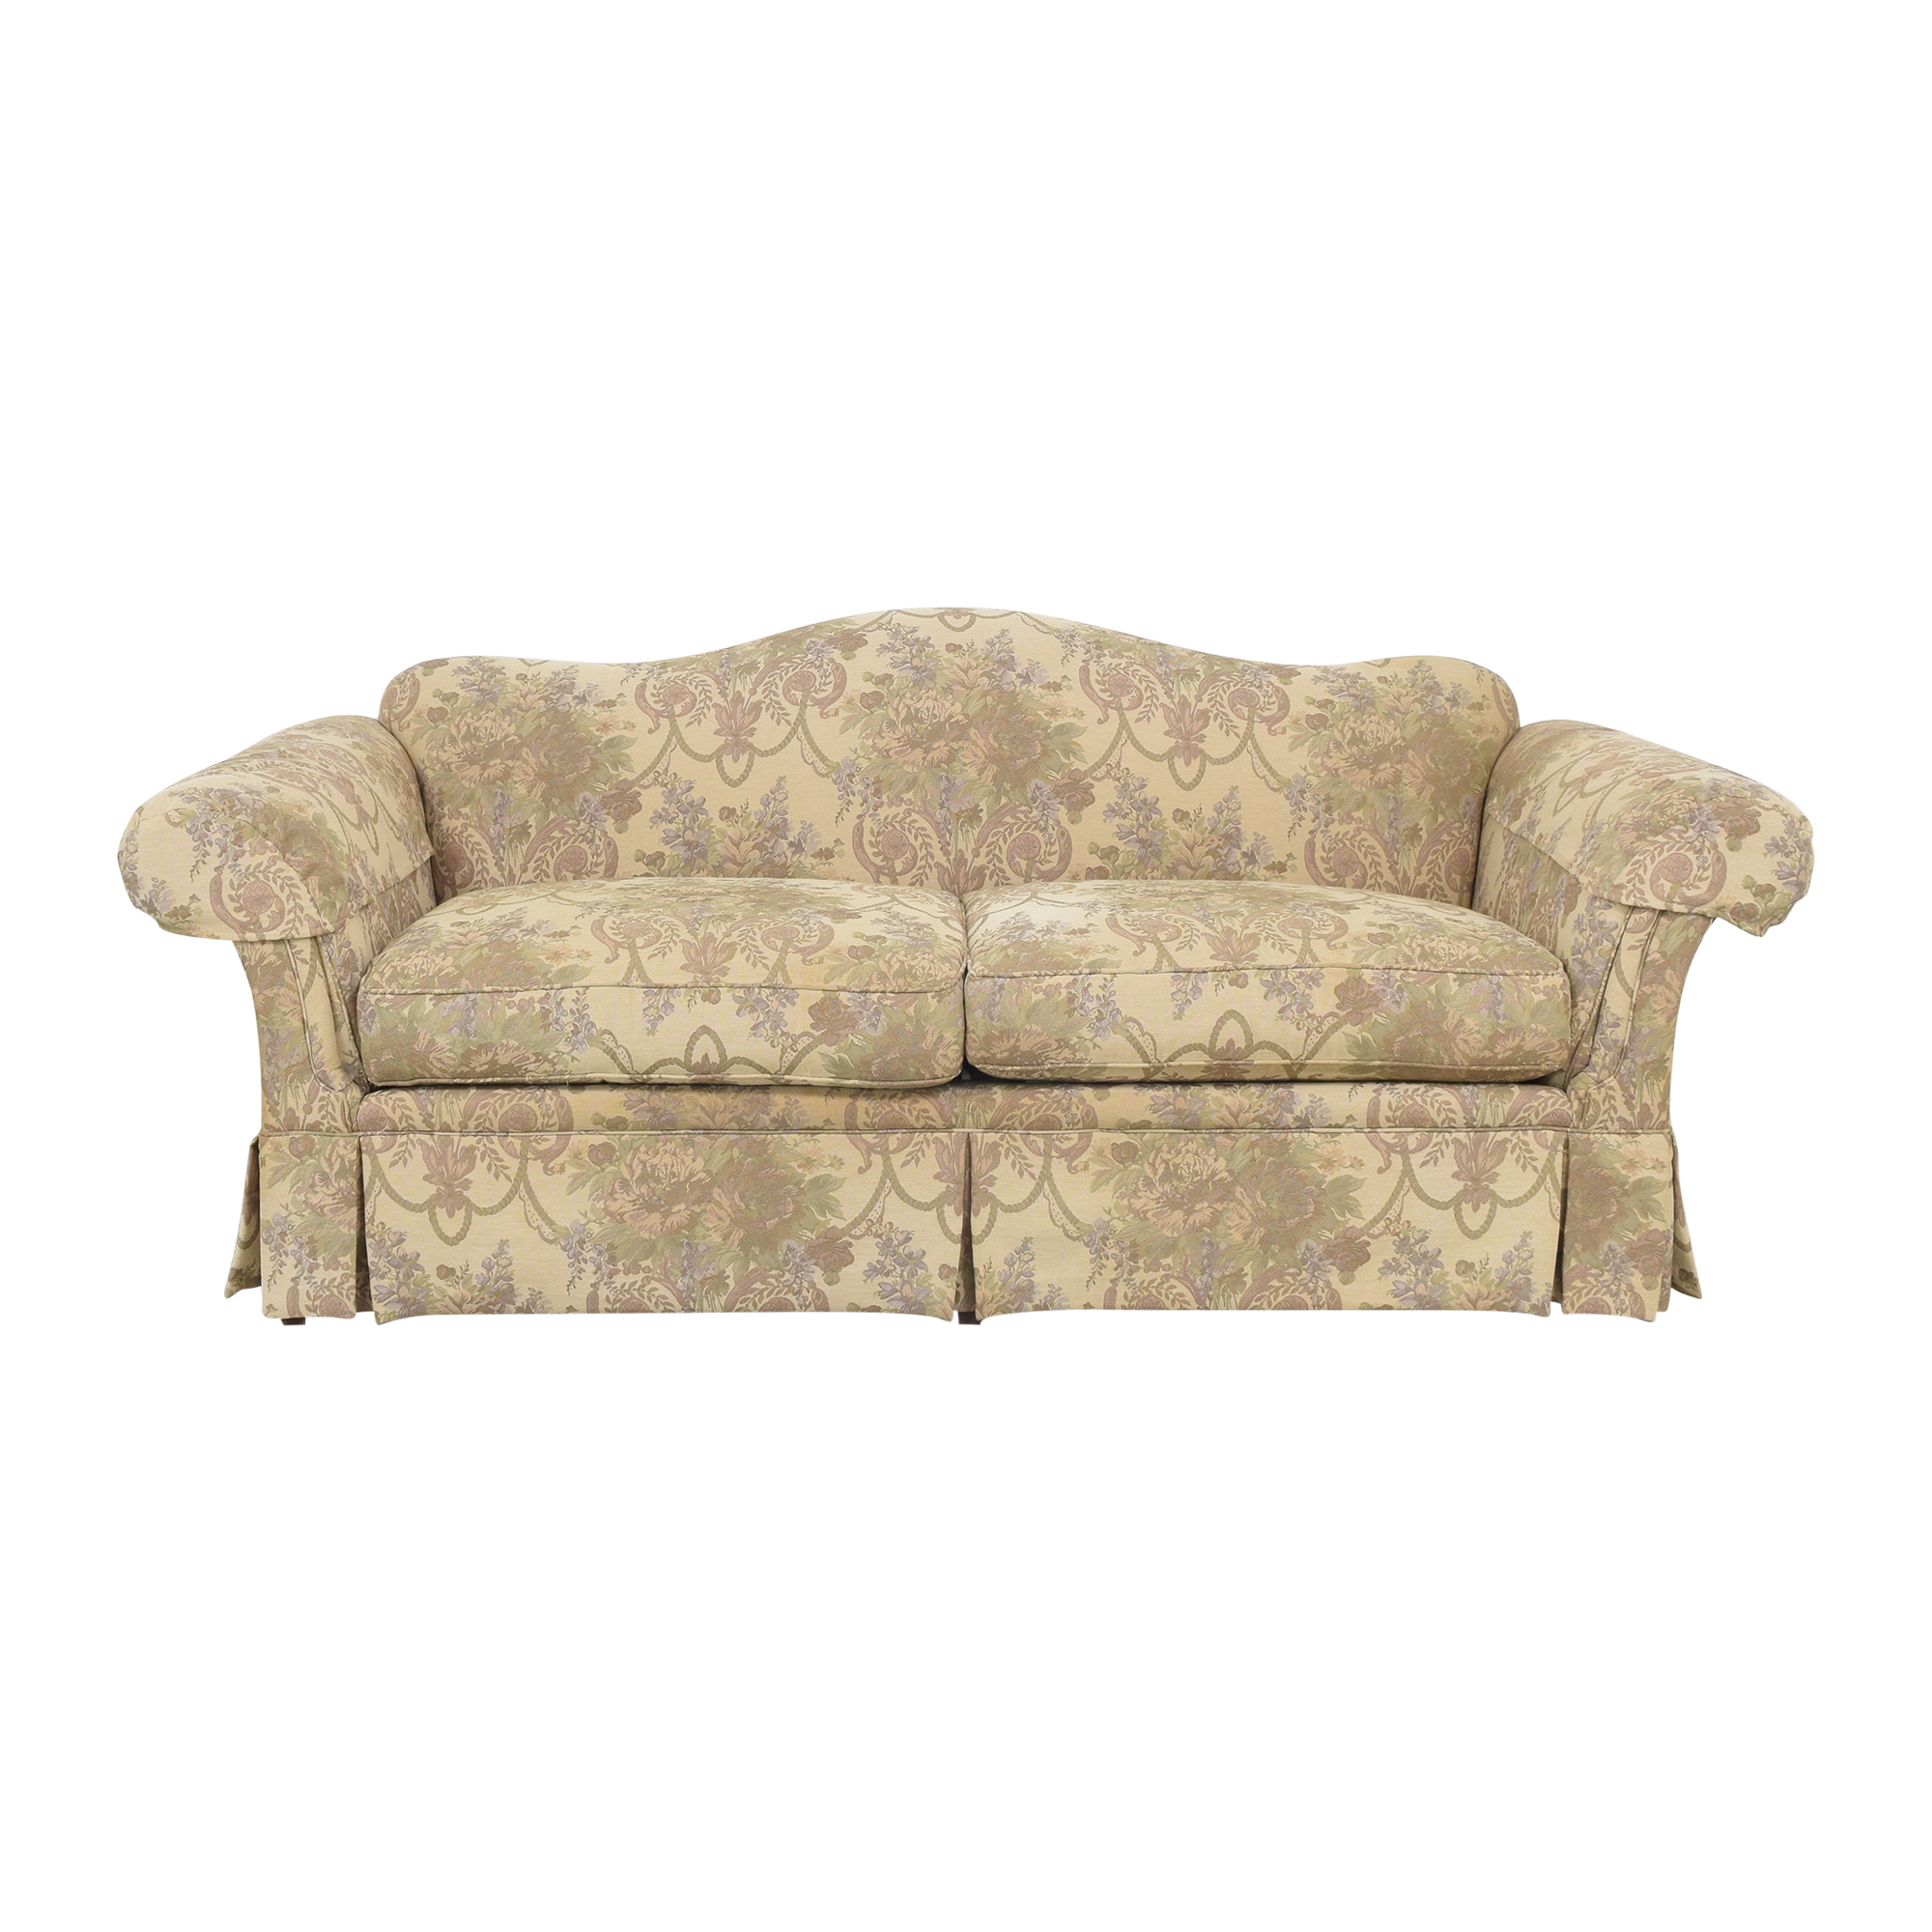 buy Highland House Camelback Sofa Highland House Furniture